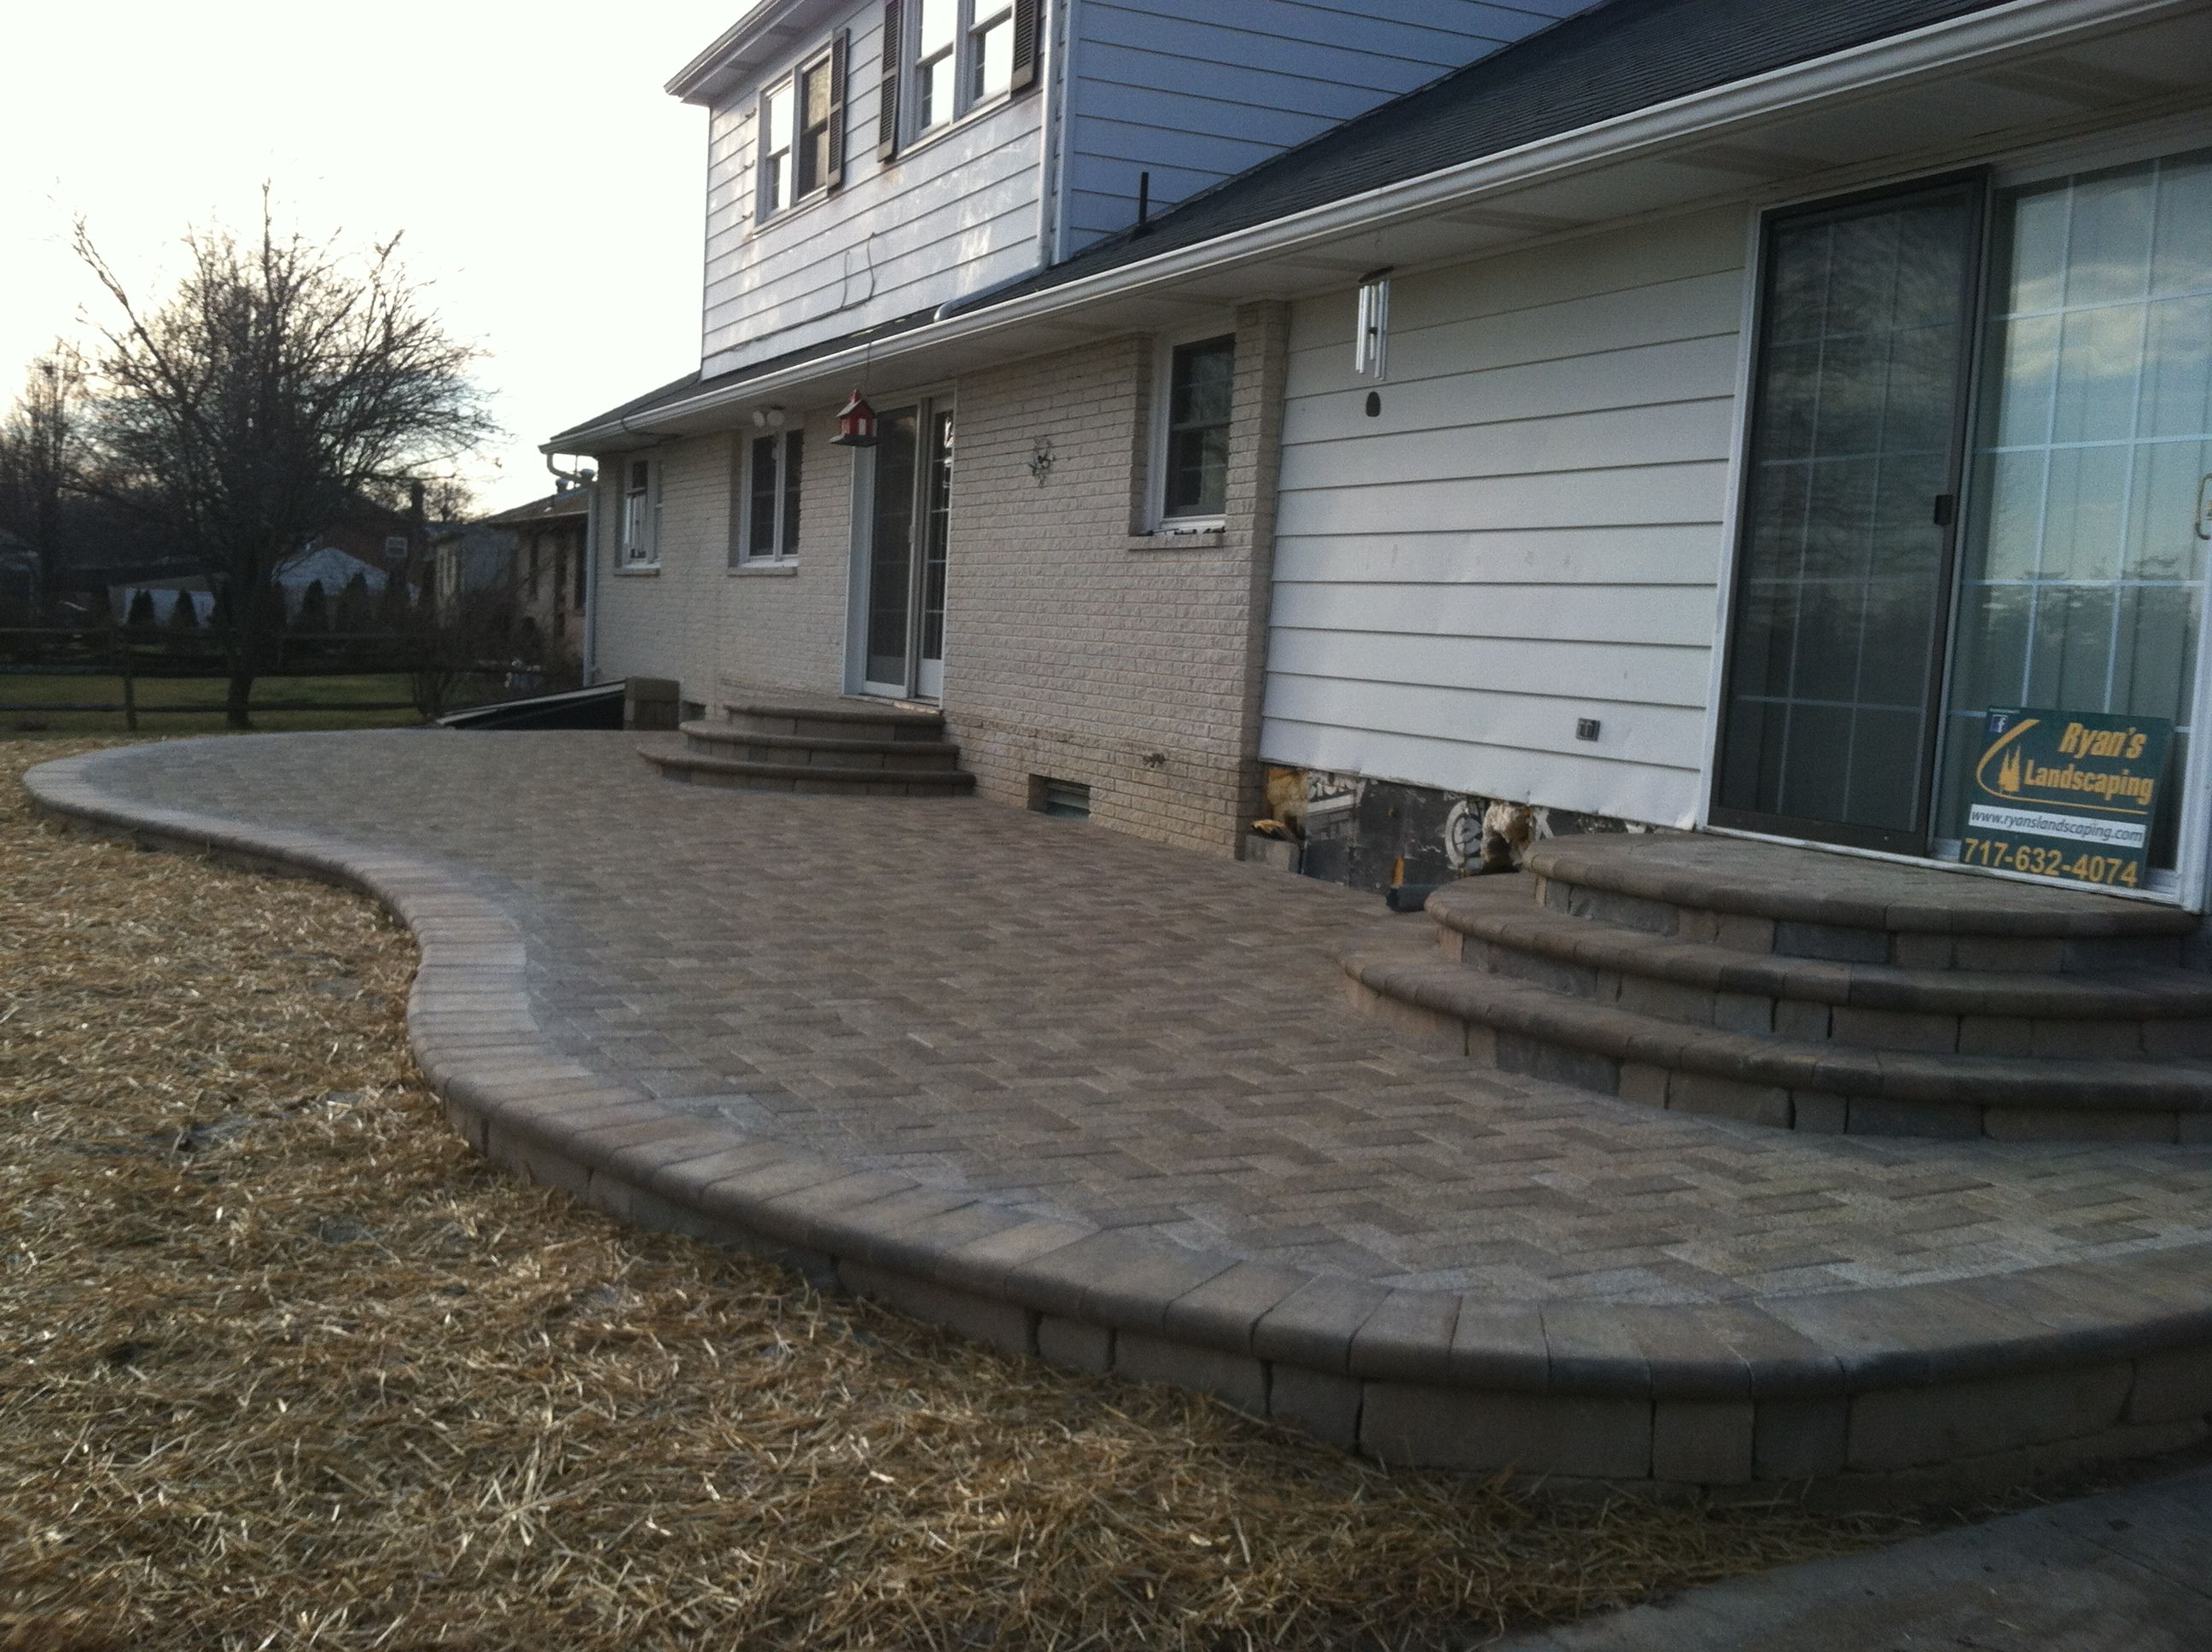 Elevated Hanover Paver Patio Installation with Rounded Steps. & Elevated Hanover Paver Patio Installation with Rounded Steps ...